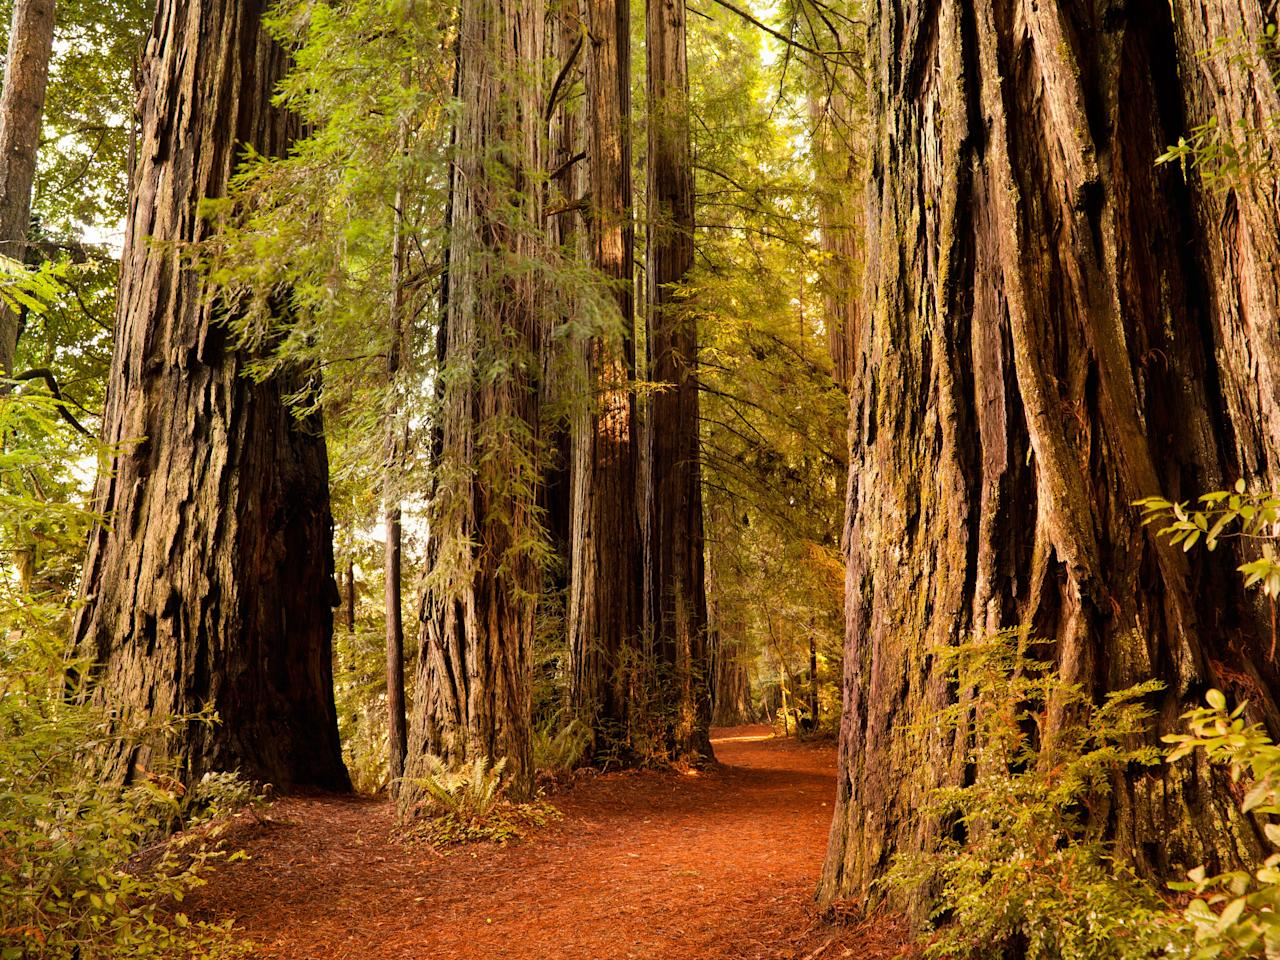 "<p><a href=""https://www.nps.gov/redw/index.htm"" rel=""nofollow"" target=""_blank"">Redwood National and State Parks</a> in northernmost coastal California inspired the setting for Planet Endor in <em>Star Wars: Episode VI – Return of the Jedi</em>. Perhaps the most memorable characters of the 1983 film were the Ewoks, who made their forest homes in groves of the world's tallest trees.</p> <p><strong>Getting there</strong><br> Redwood National and State Parks is a six-hour drive north from <a href=""https://www.cntraveler.com/destinations/san-francisco?mbid=synd_yahoo_rss"" target=""_blank"">San Francisco</a>. If <a href=""https://www.cntraveler.com/story/3-days-around-california-redwoods-russian-river-valley?mbid=synd_yahoo_rss"" target=""_blank"">road tripping on the 101 from San Francisco</a>, take some time to enjoy the journey: in the summertime, detour to Guerneville and float through the redwoods, down the Russian River; drive through a tree on the Avenue of the Giants in Humboldt County; or stroll through the Victorian seaport of Eureka—the entire city is a state historic landmark. If you'd rather skip the long drive, there are three airports within close proximity: Del Norte County Airport/Jack McNamara Field (CEC), Arcata-Eureka Airport (ACV), and Rogue Valley International-Medford Airport (MFR). Pick up a rental car at the airports to explore the parks.</p> <p><strong>Playing there</strong><br> Hundreds of miles of trails wind through the old-growth redwoods to the rugged coastline of Northern California. Regardless of how much time you have, there's a hike to fit that time frame. We'd start with <a href=""https://www.nps.gov/thingstodo/lbjgrove.htm"" rel=""nofollow"" target=""_blank"">Lady Bird Johnson Grove,</a> a 1.5-mile loop trail, to acquaint yourself with the park. According to the National Park Service, this trail is a ""popular first (or last) walk in the redwoods for visitors because it is on the southern end of the park."" Be sure to stop at one of the five <a href=""https://www.nps.gov/redw/planyourvisit/visitorcenters.htm"" rel=""nofollow"" target=""_blank"">information centers</a> along the length of the park for maps and rangers' intel.</p> <p><strong>Staying there</strong><br> Camping is the only overnight option within Redwood National and State Parks. Otherwise, neighboring communities offer plenty of choices when it comes to hotels, inns, and bed and breakfasts.</p>"